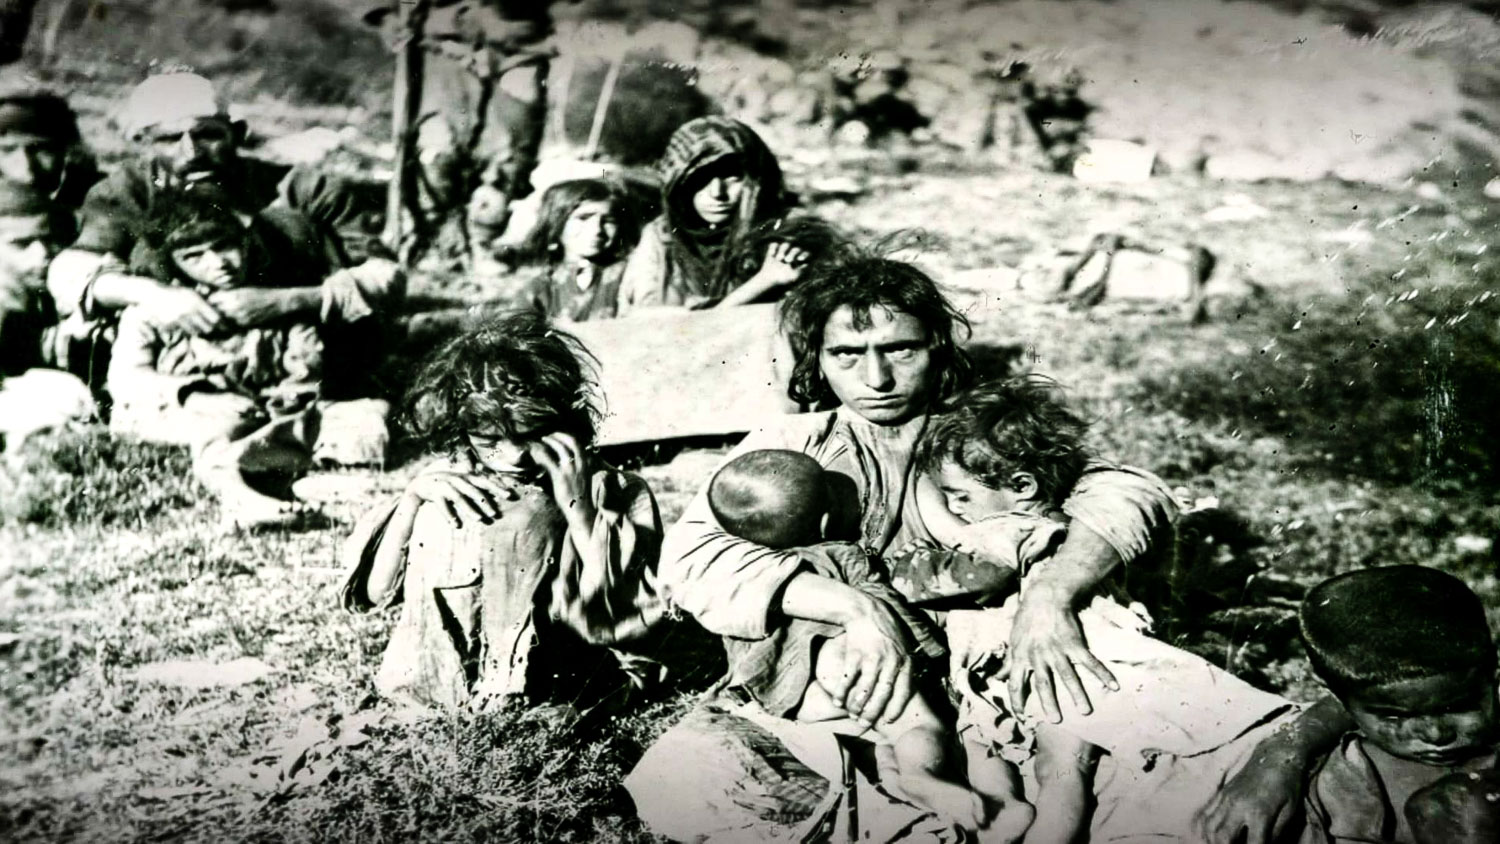 Villagers in Dersim, who were reportedly killed soon after this photo was taken.